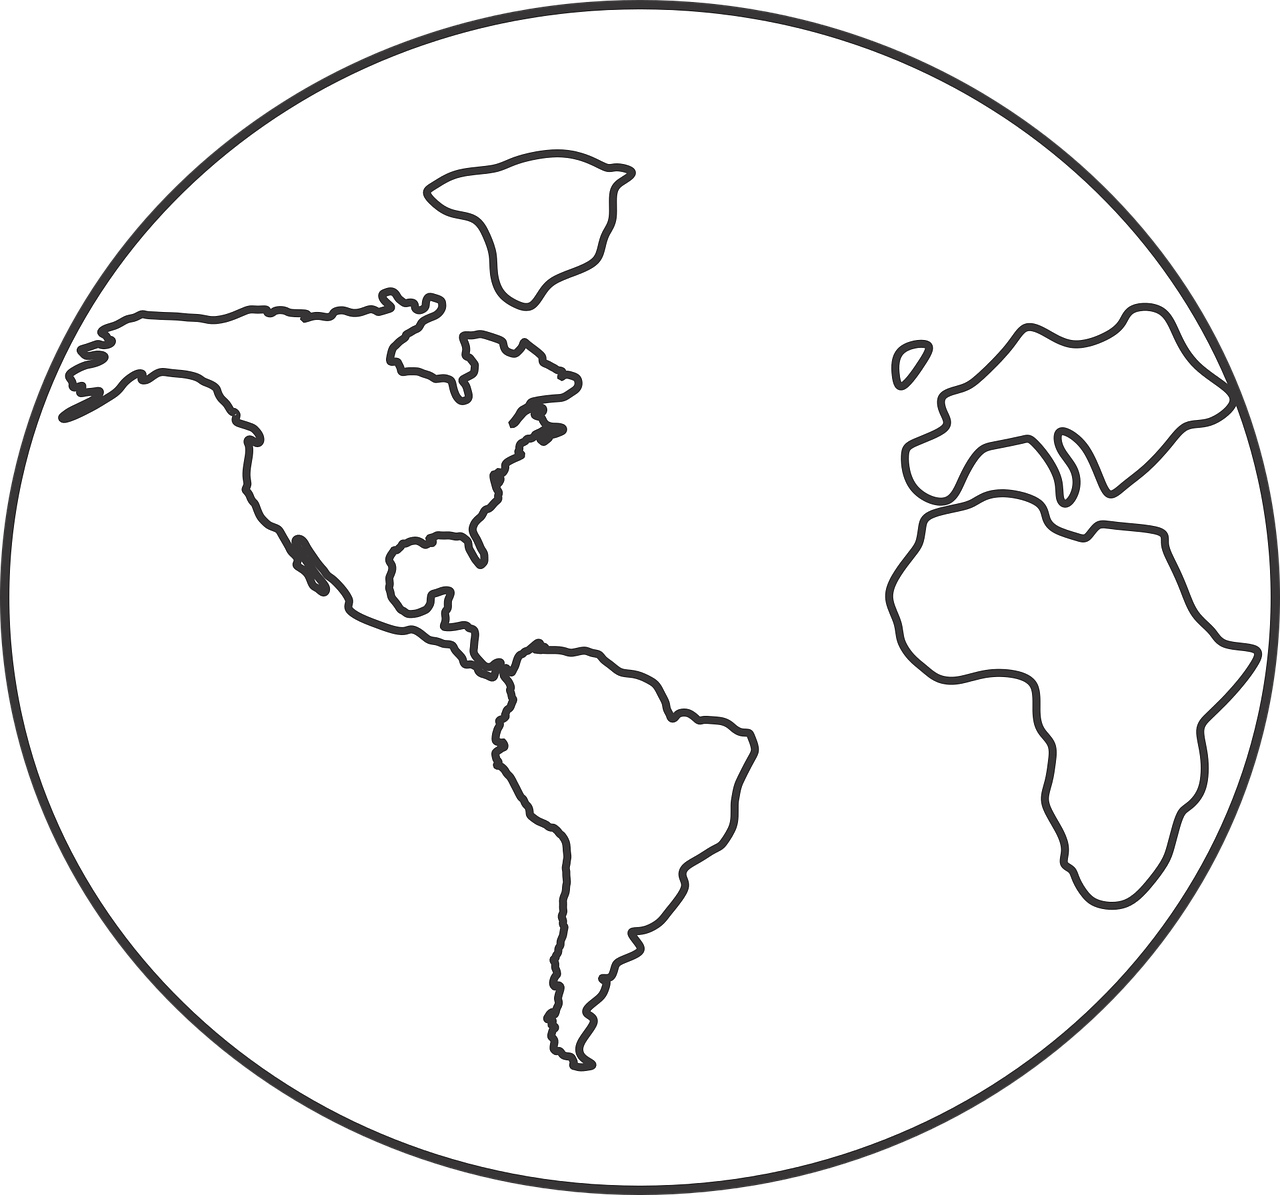 how to draw globe on a ball 5